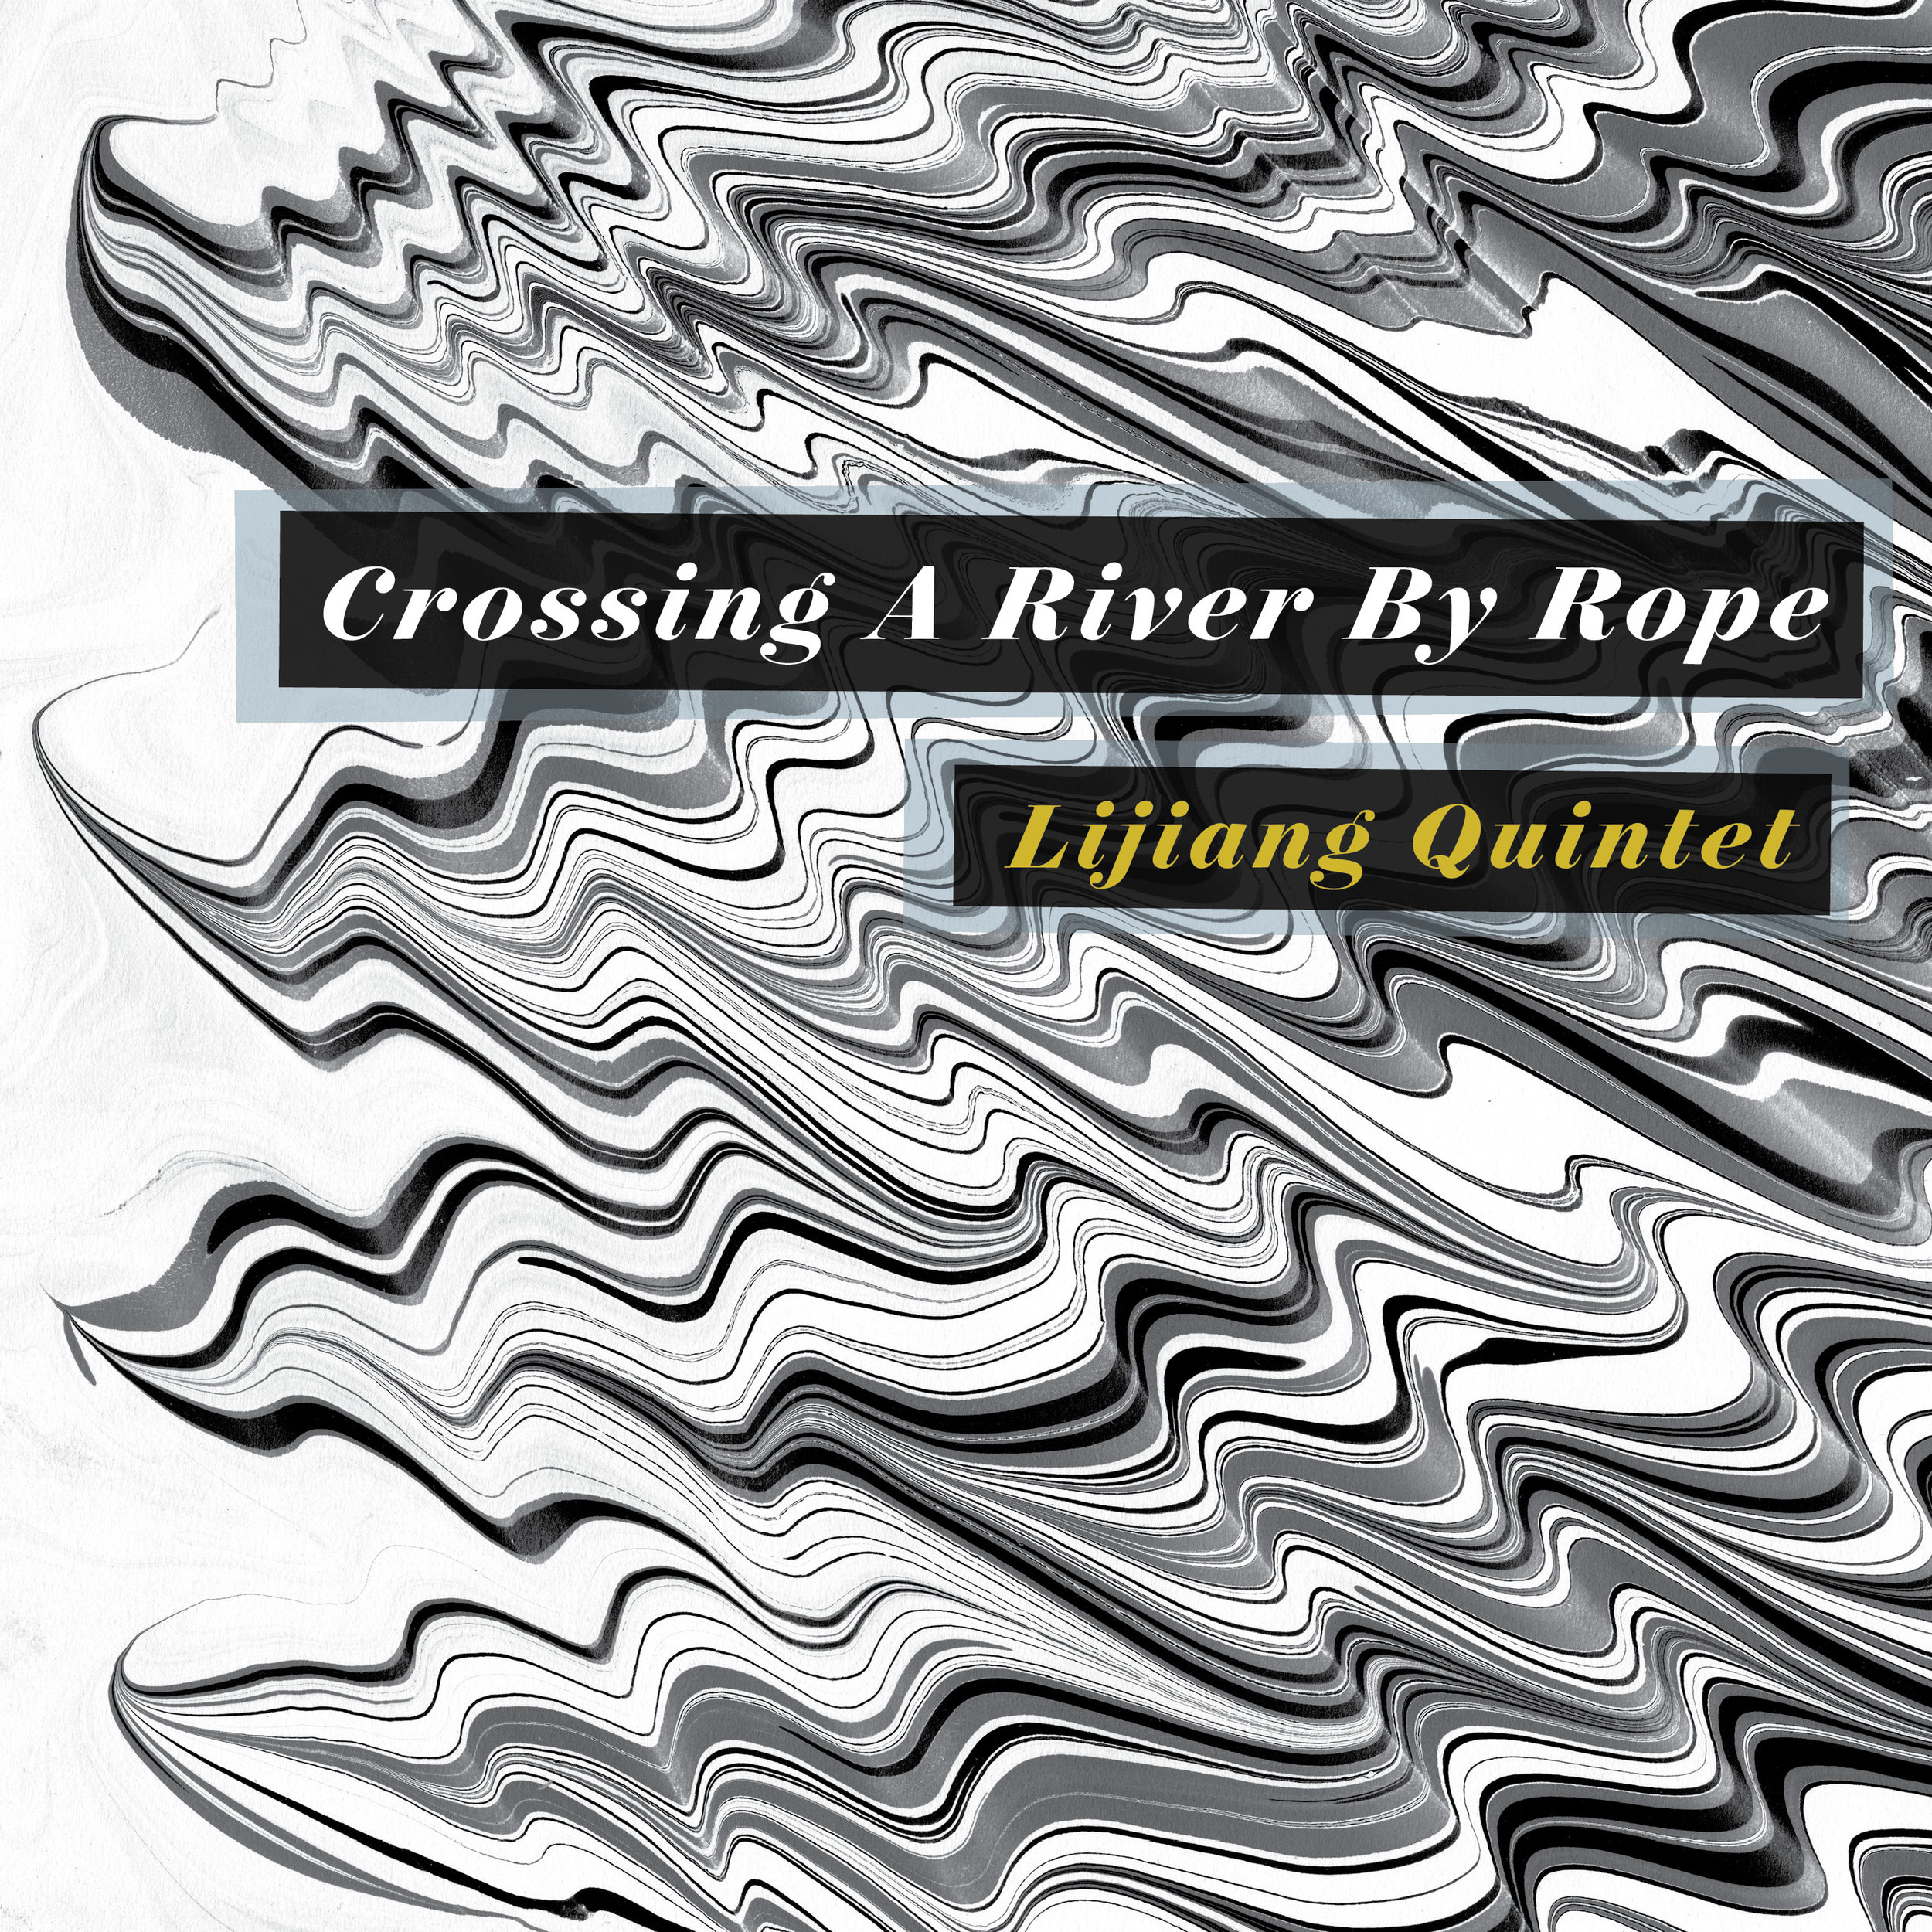 Copy of Lijiang Quintet - Crossing A River By Rope